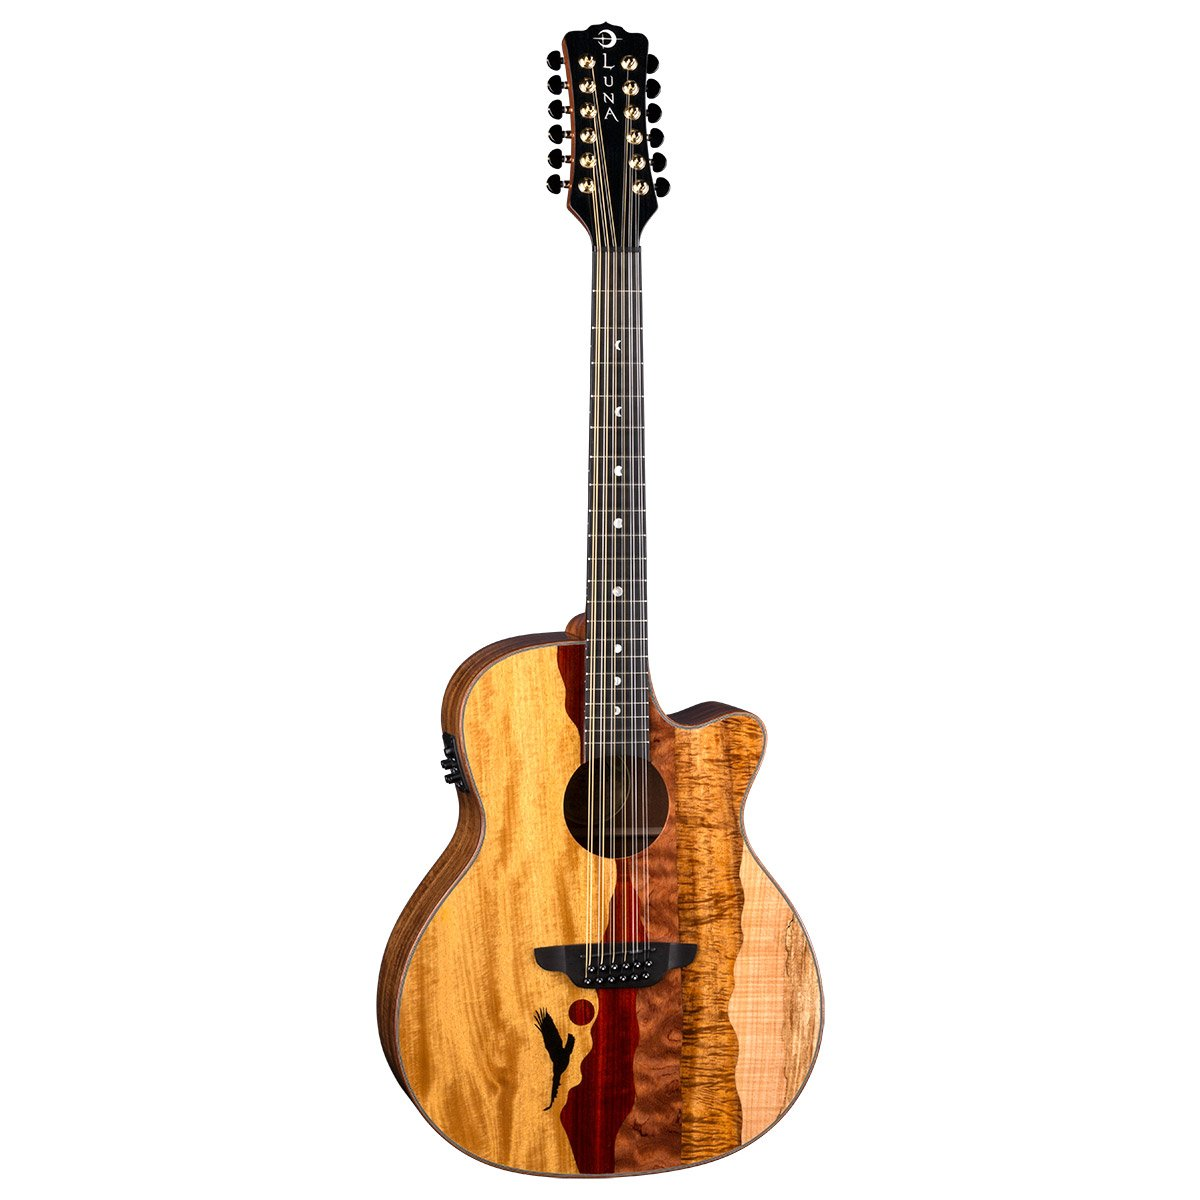 Luna Guitars 6 String Acoustic Guitar, Right, Multi (VISTA EAGLE 12) by Luna Guitars